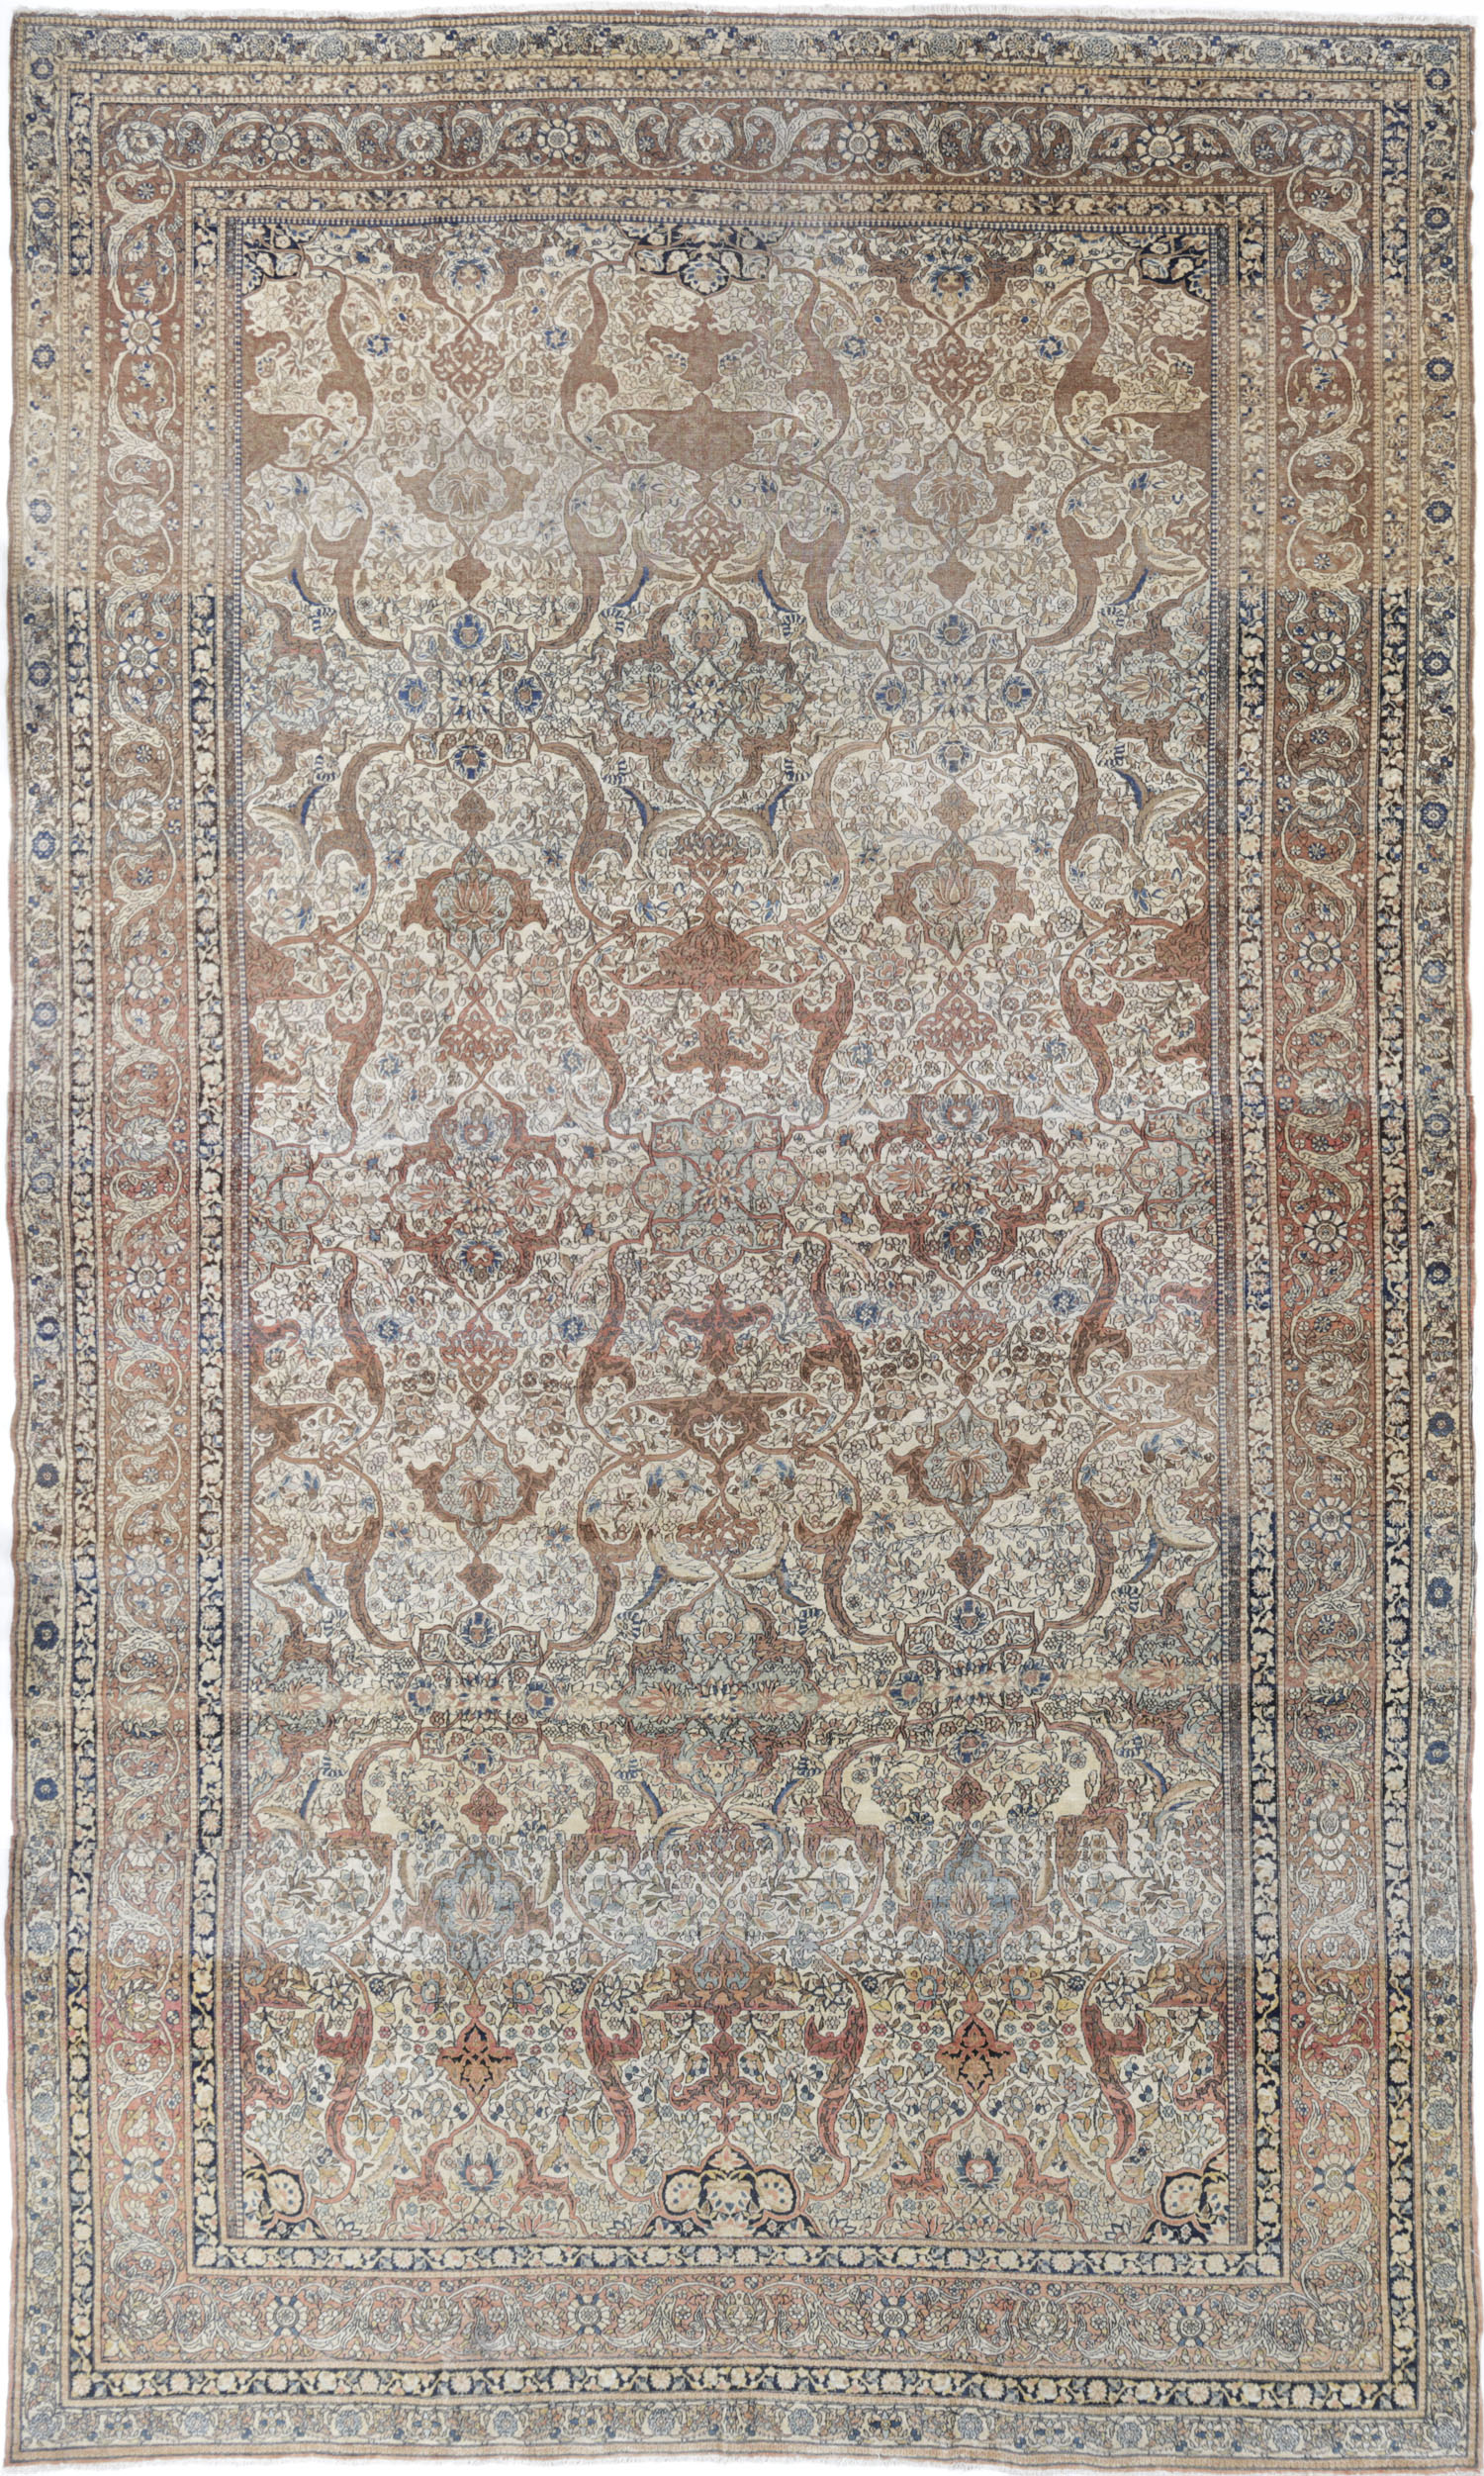 Antique Persian Distressed Fine Isfahan Rug